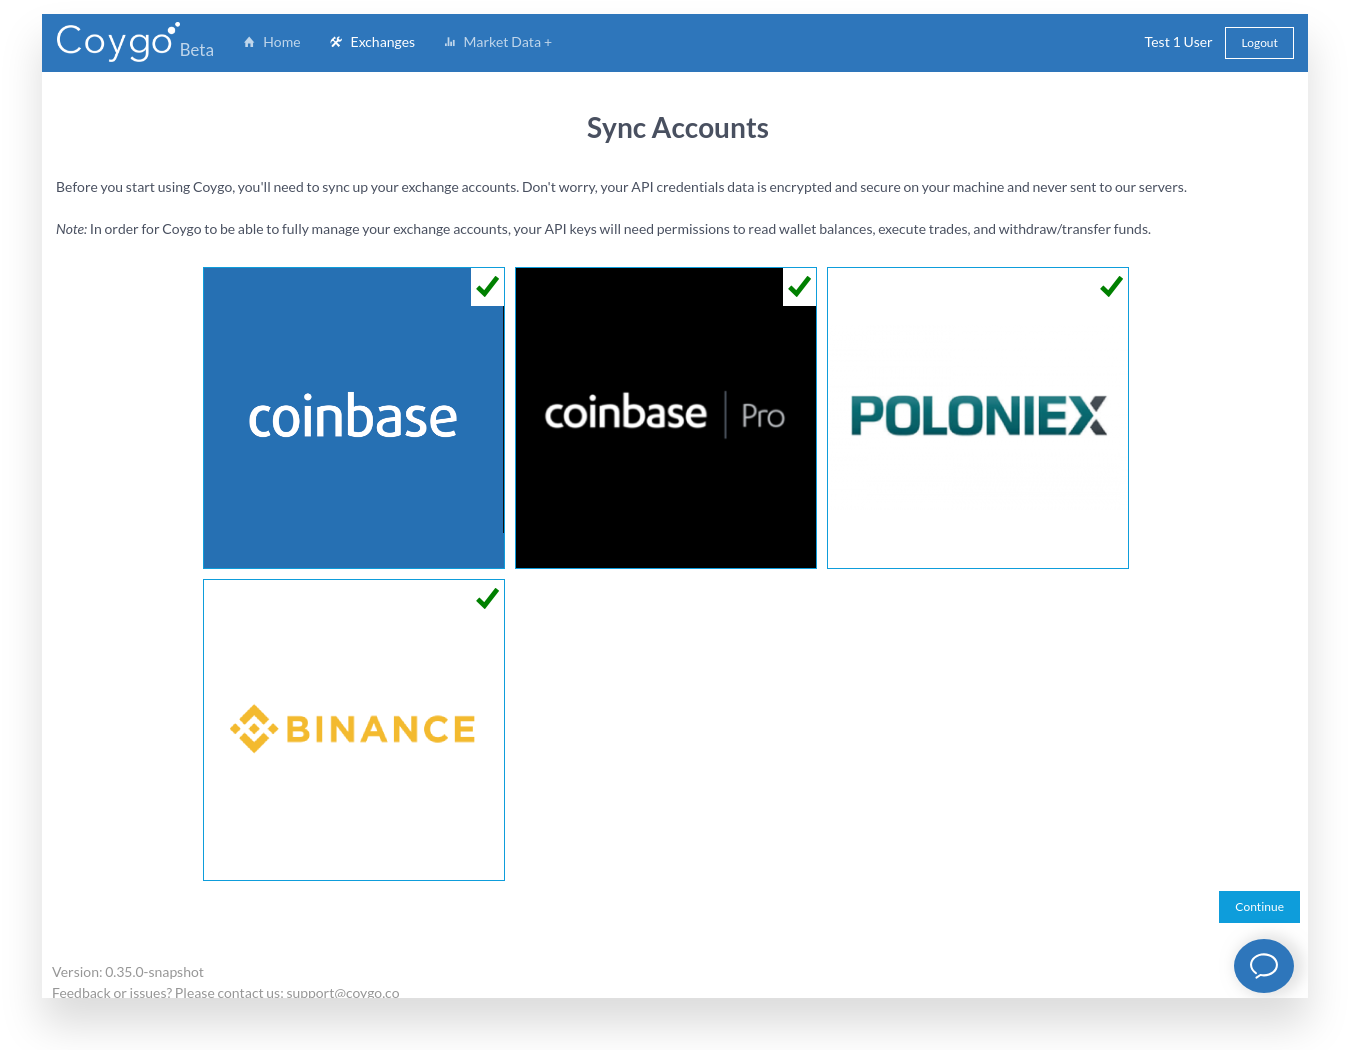 Sync Accounts redesign